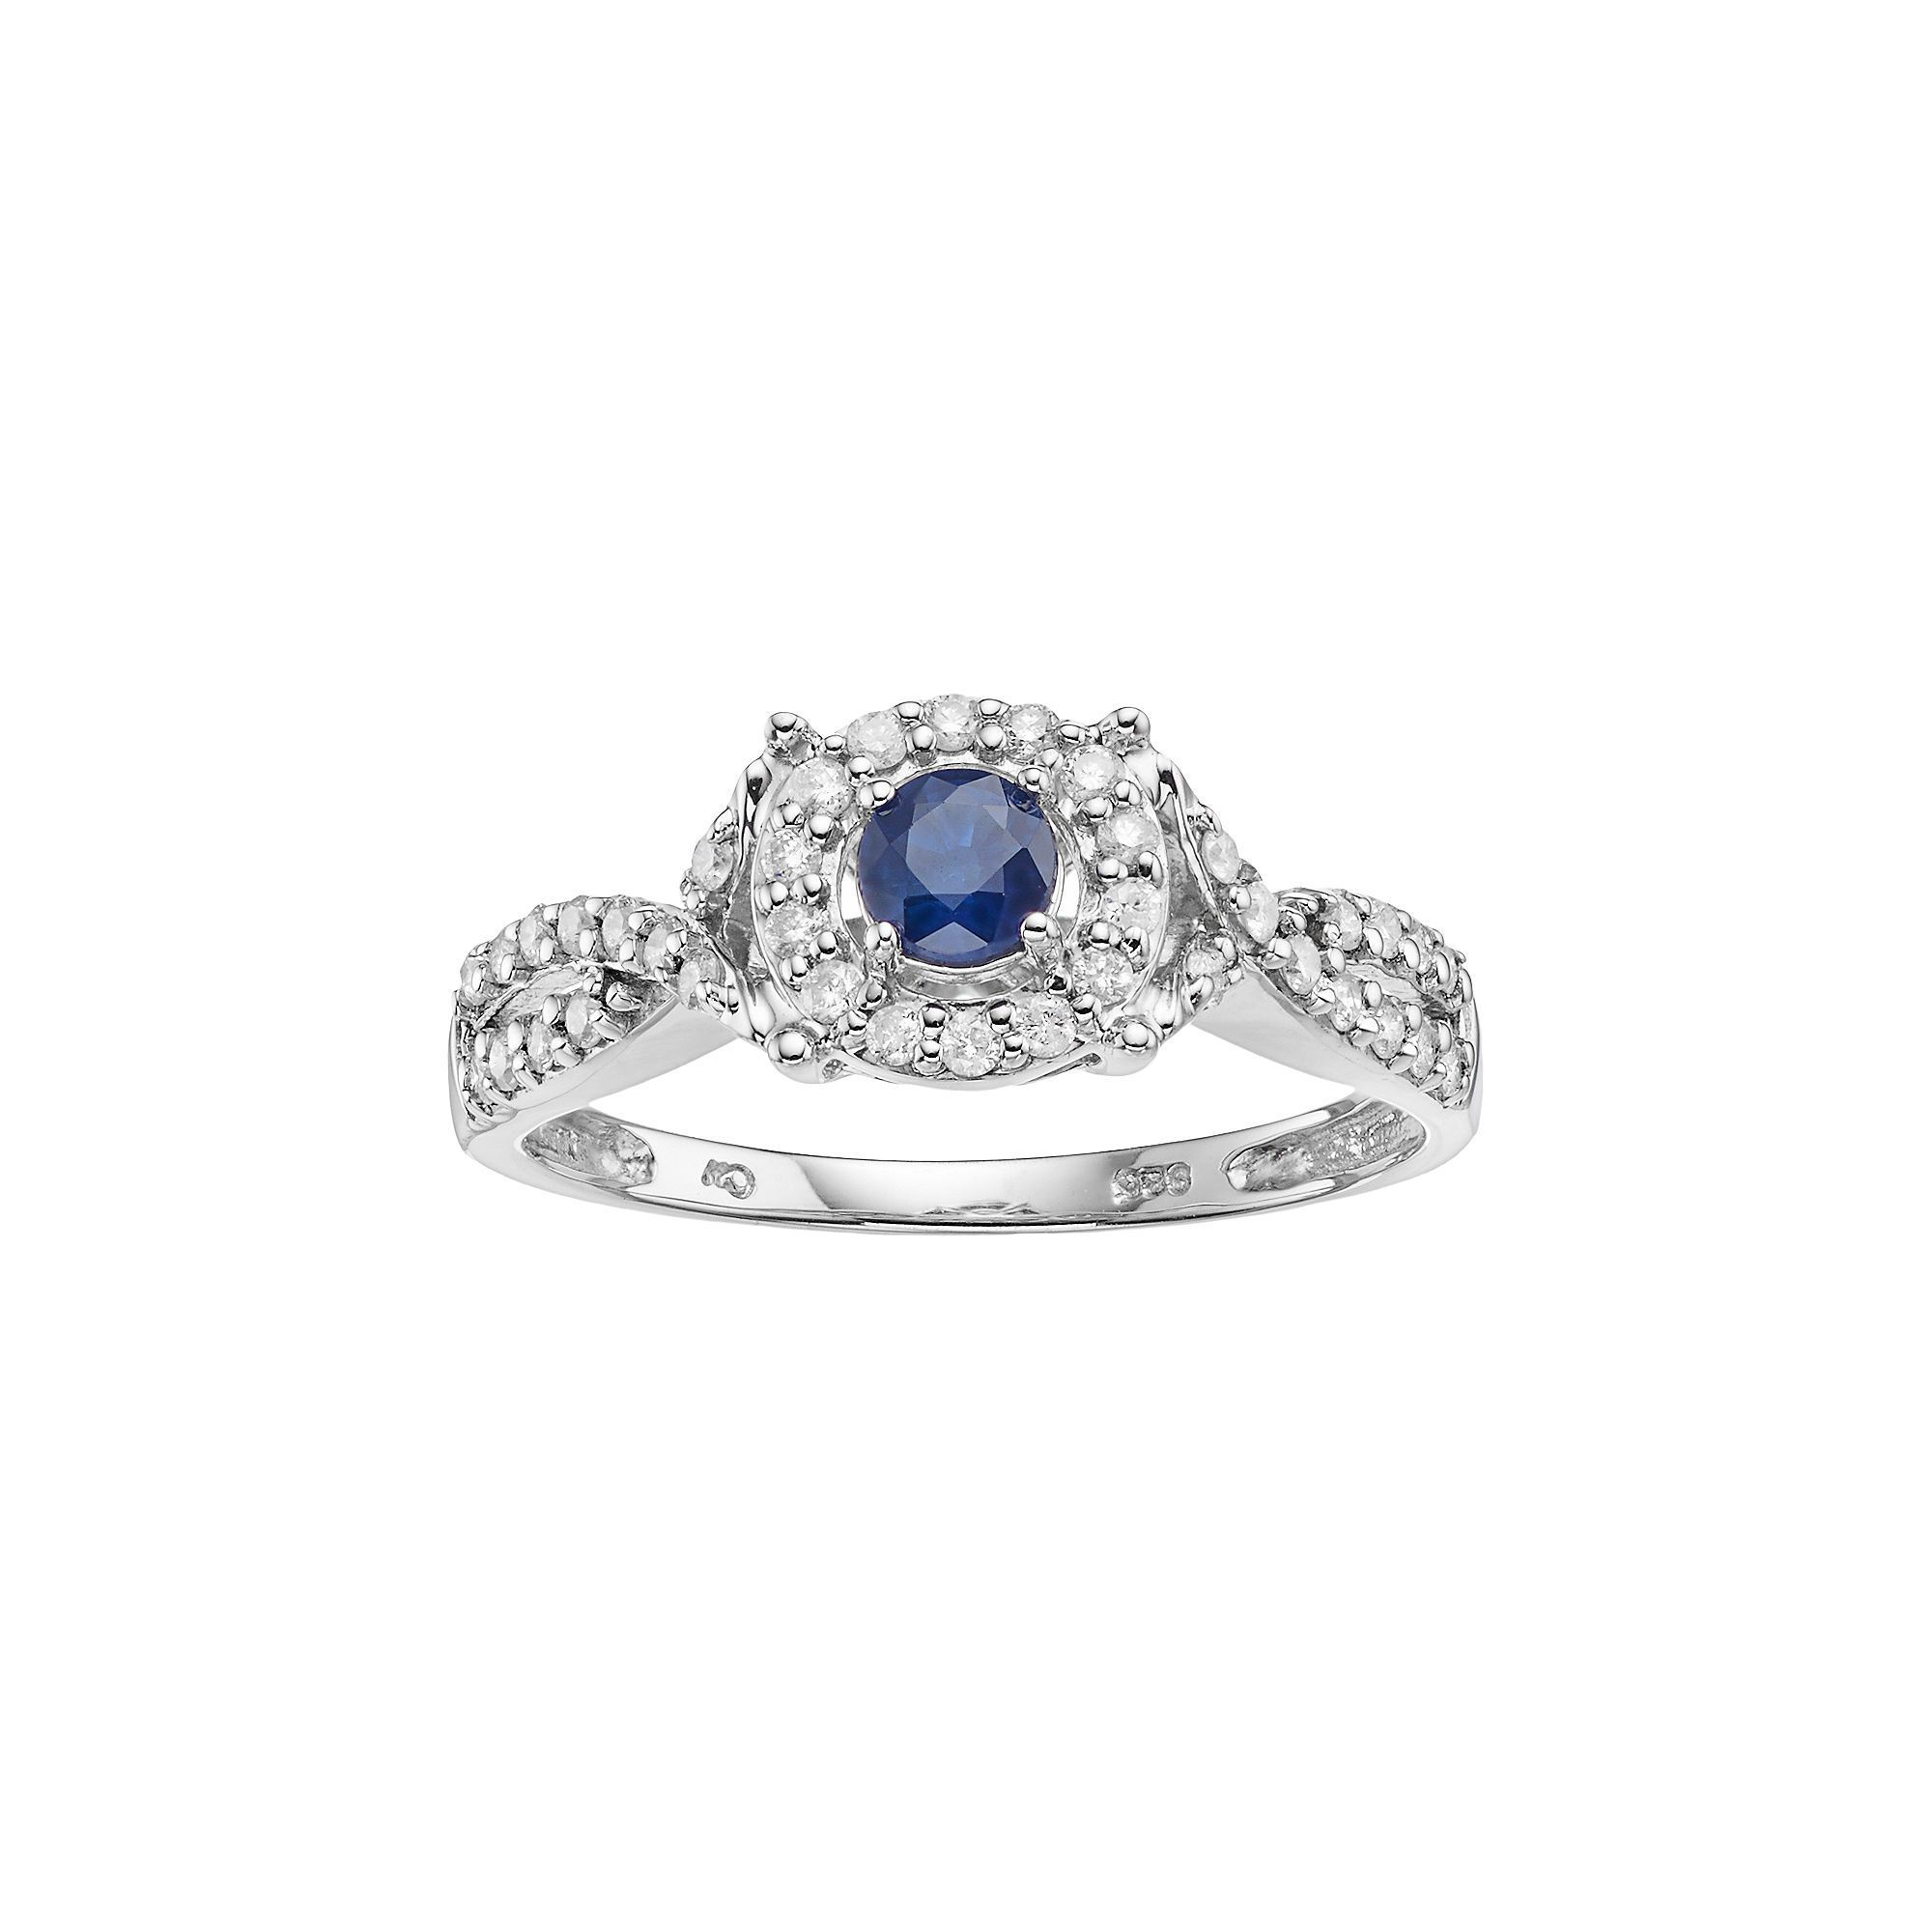 products h cttw stone ring i promise princess white sapphire gold cut engagement blue diamond